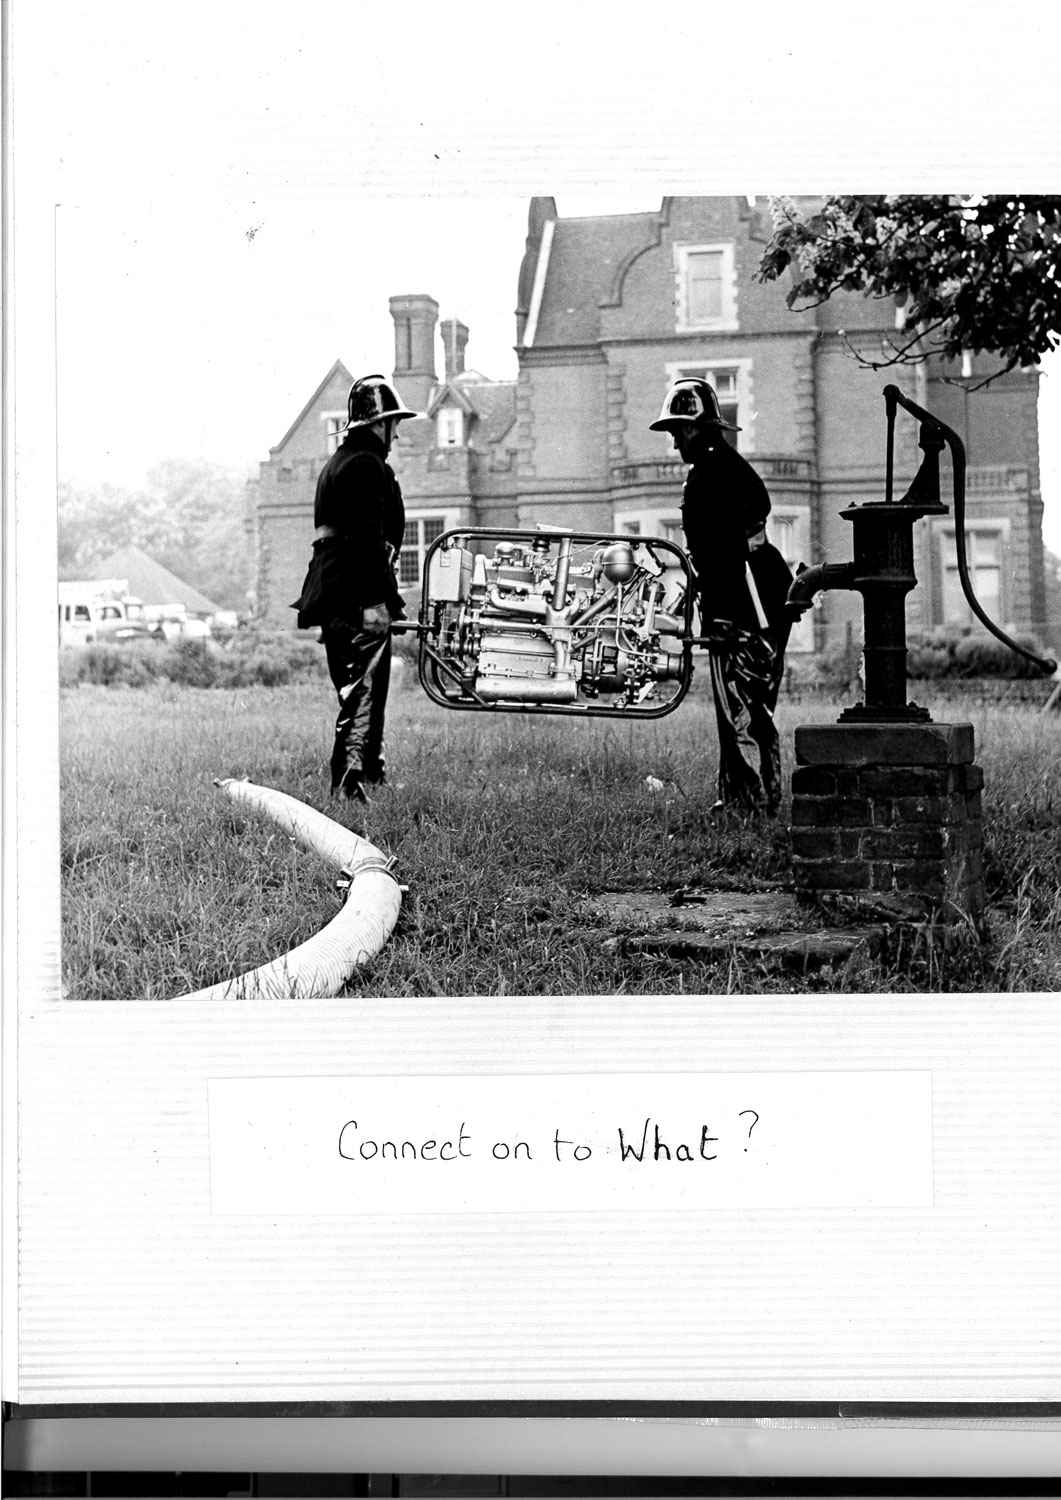 The Coventry Climax's humble origin as a portable fire pump meant its light weight, mechanical simplicity, and bulletproof reliability were perfect for a variety of applications.